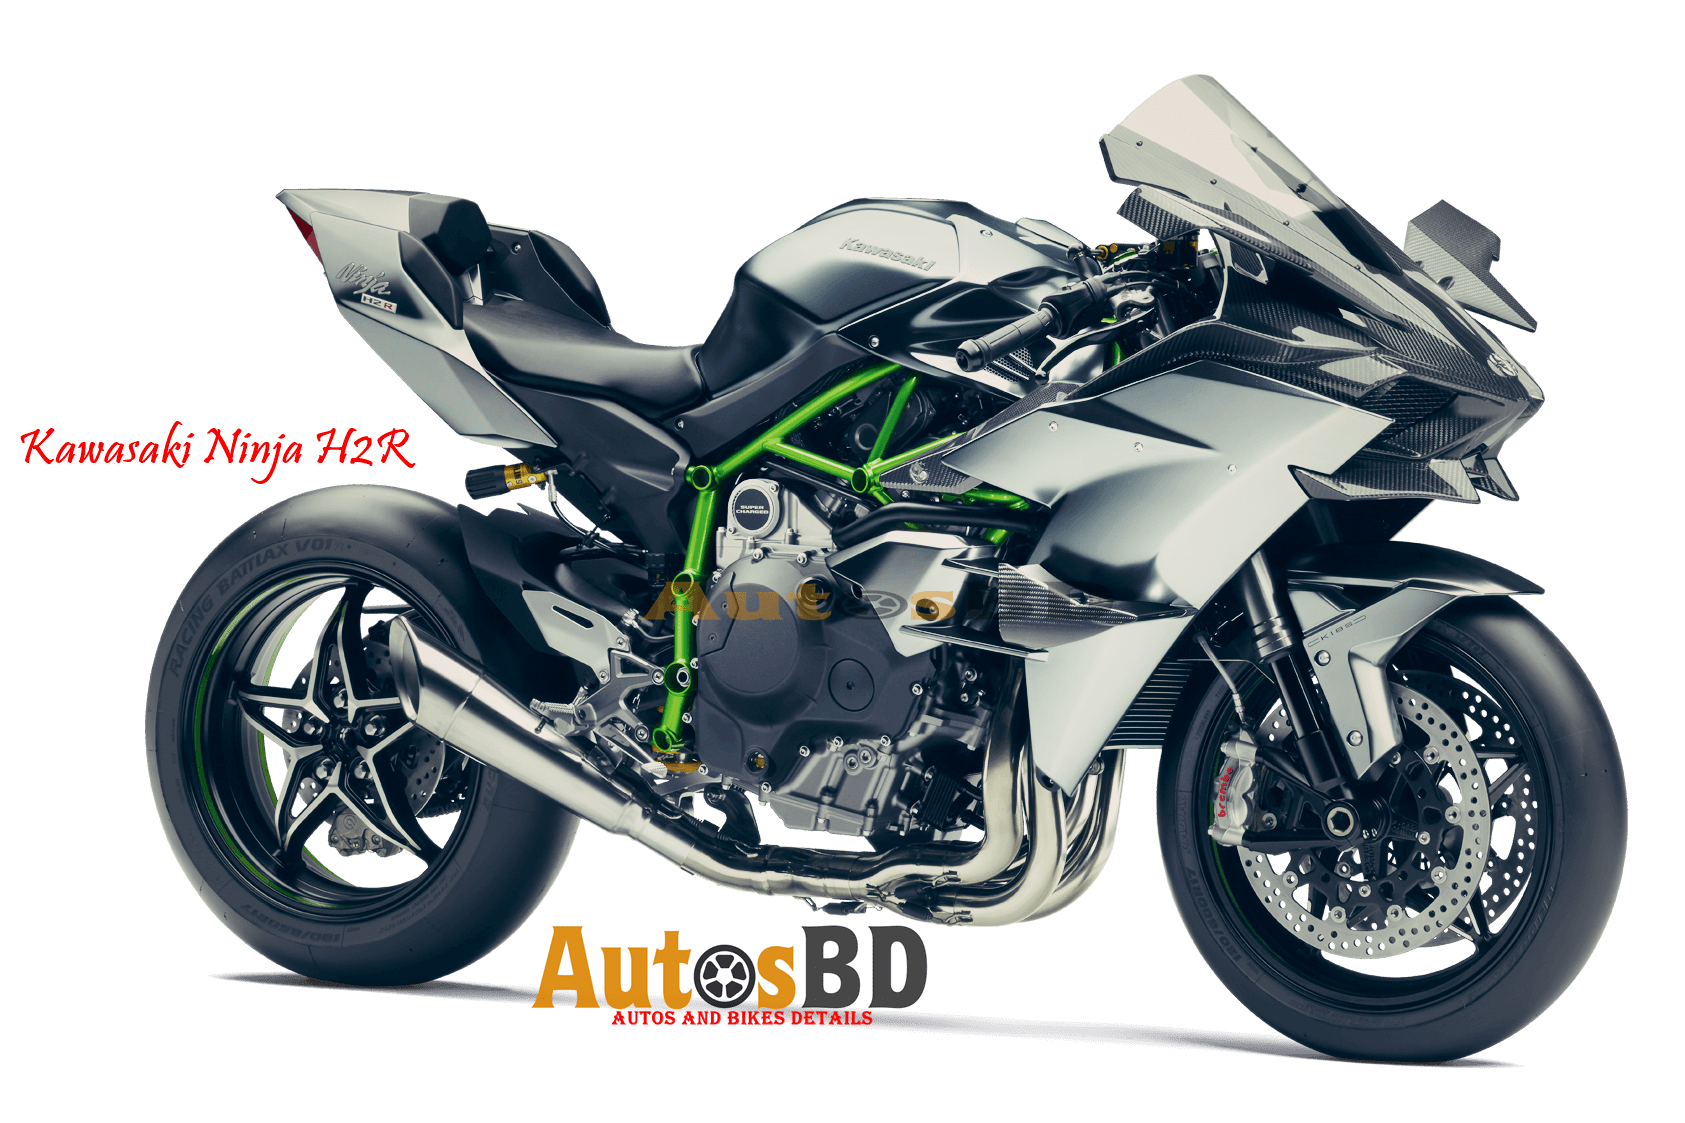 Kawasaki Ninja H2R Price in India